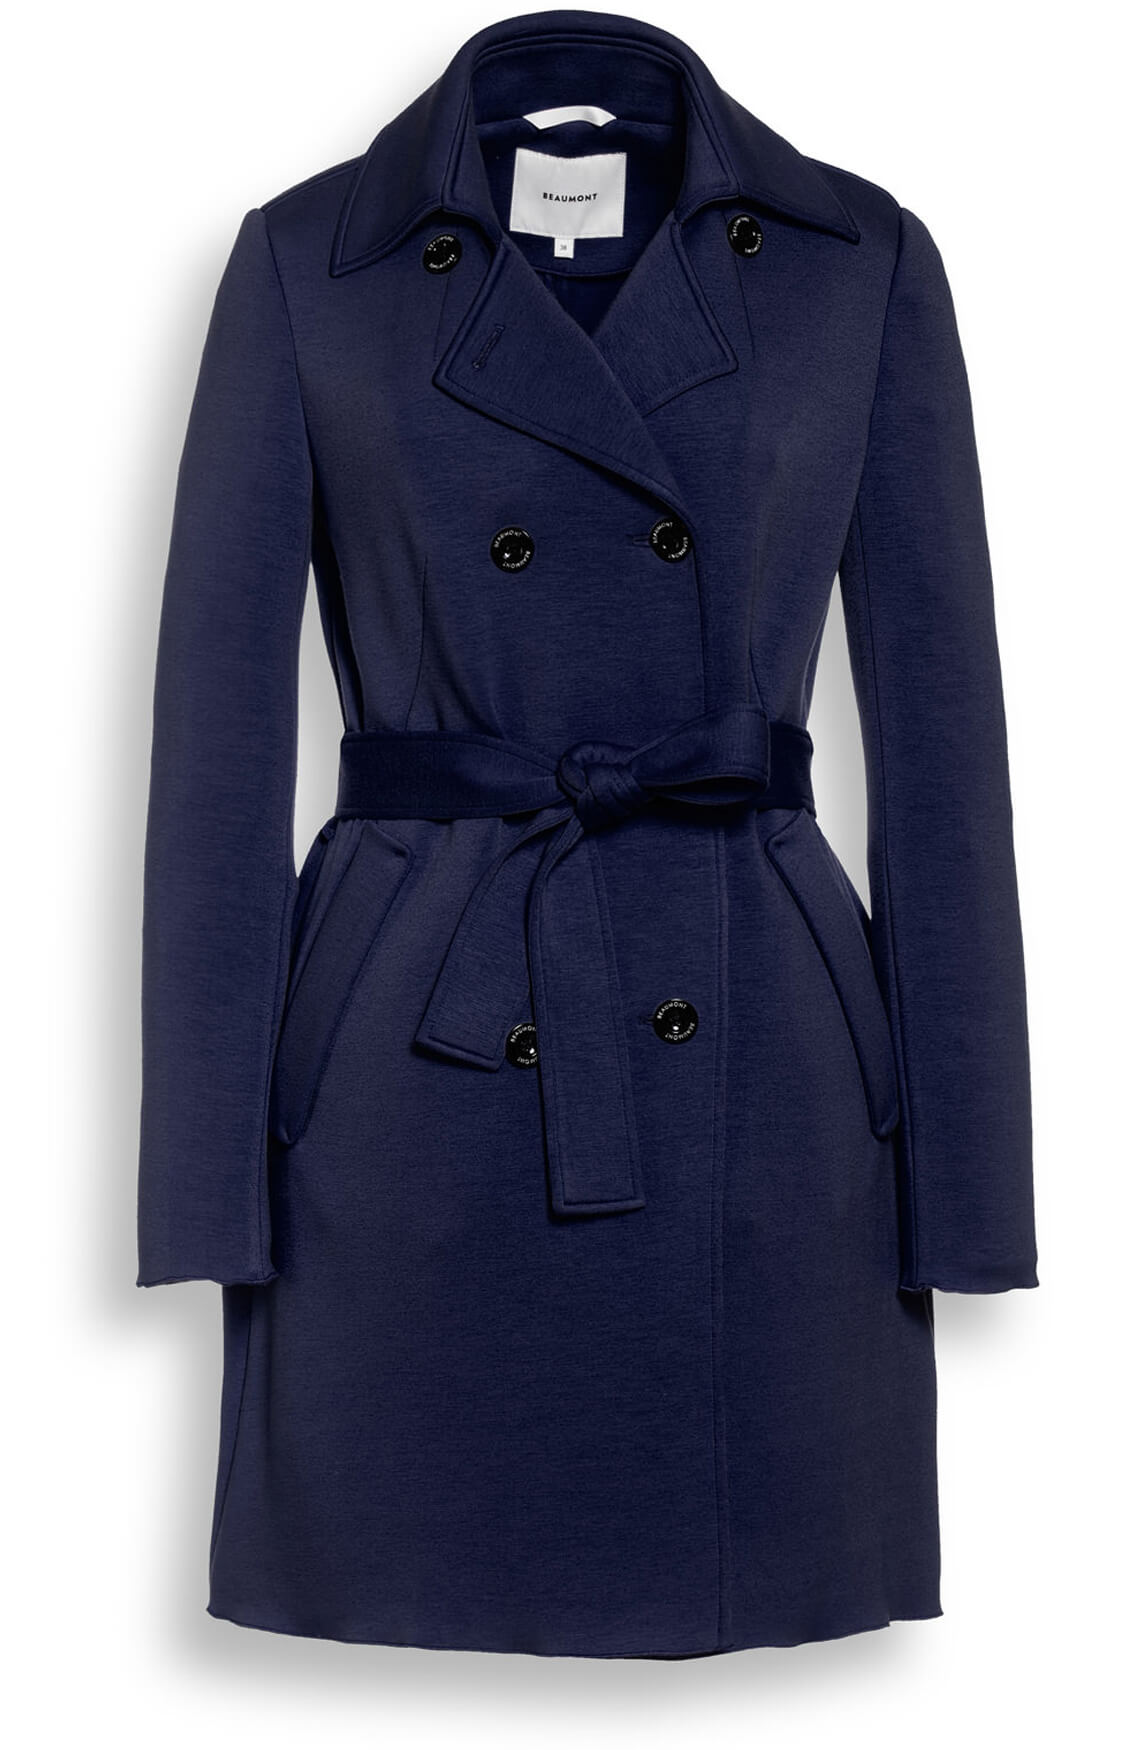 Beaumont Dames Trenchcoat Blauw